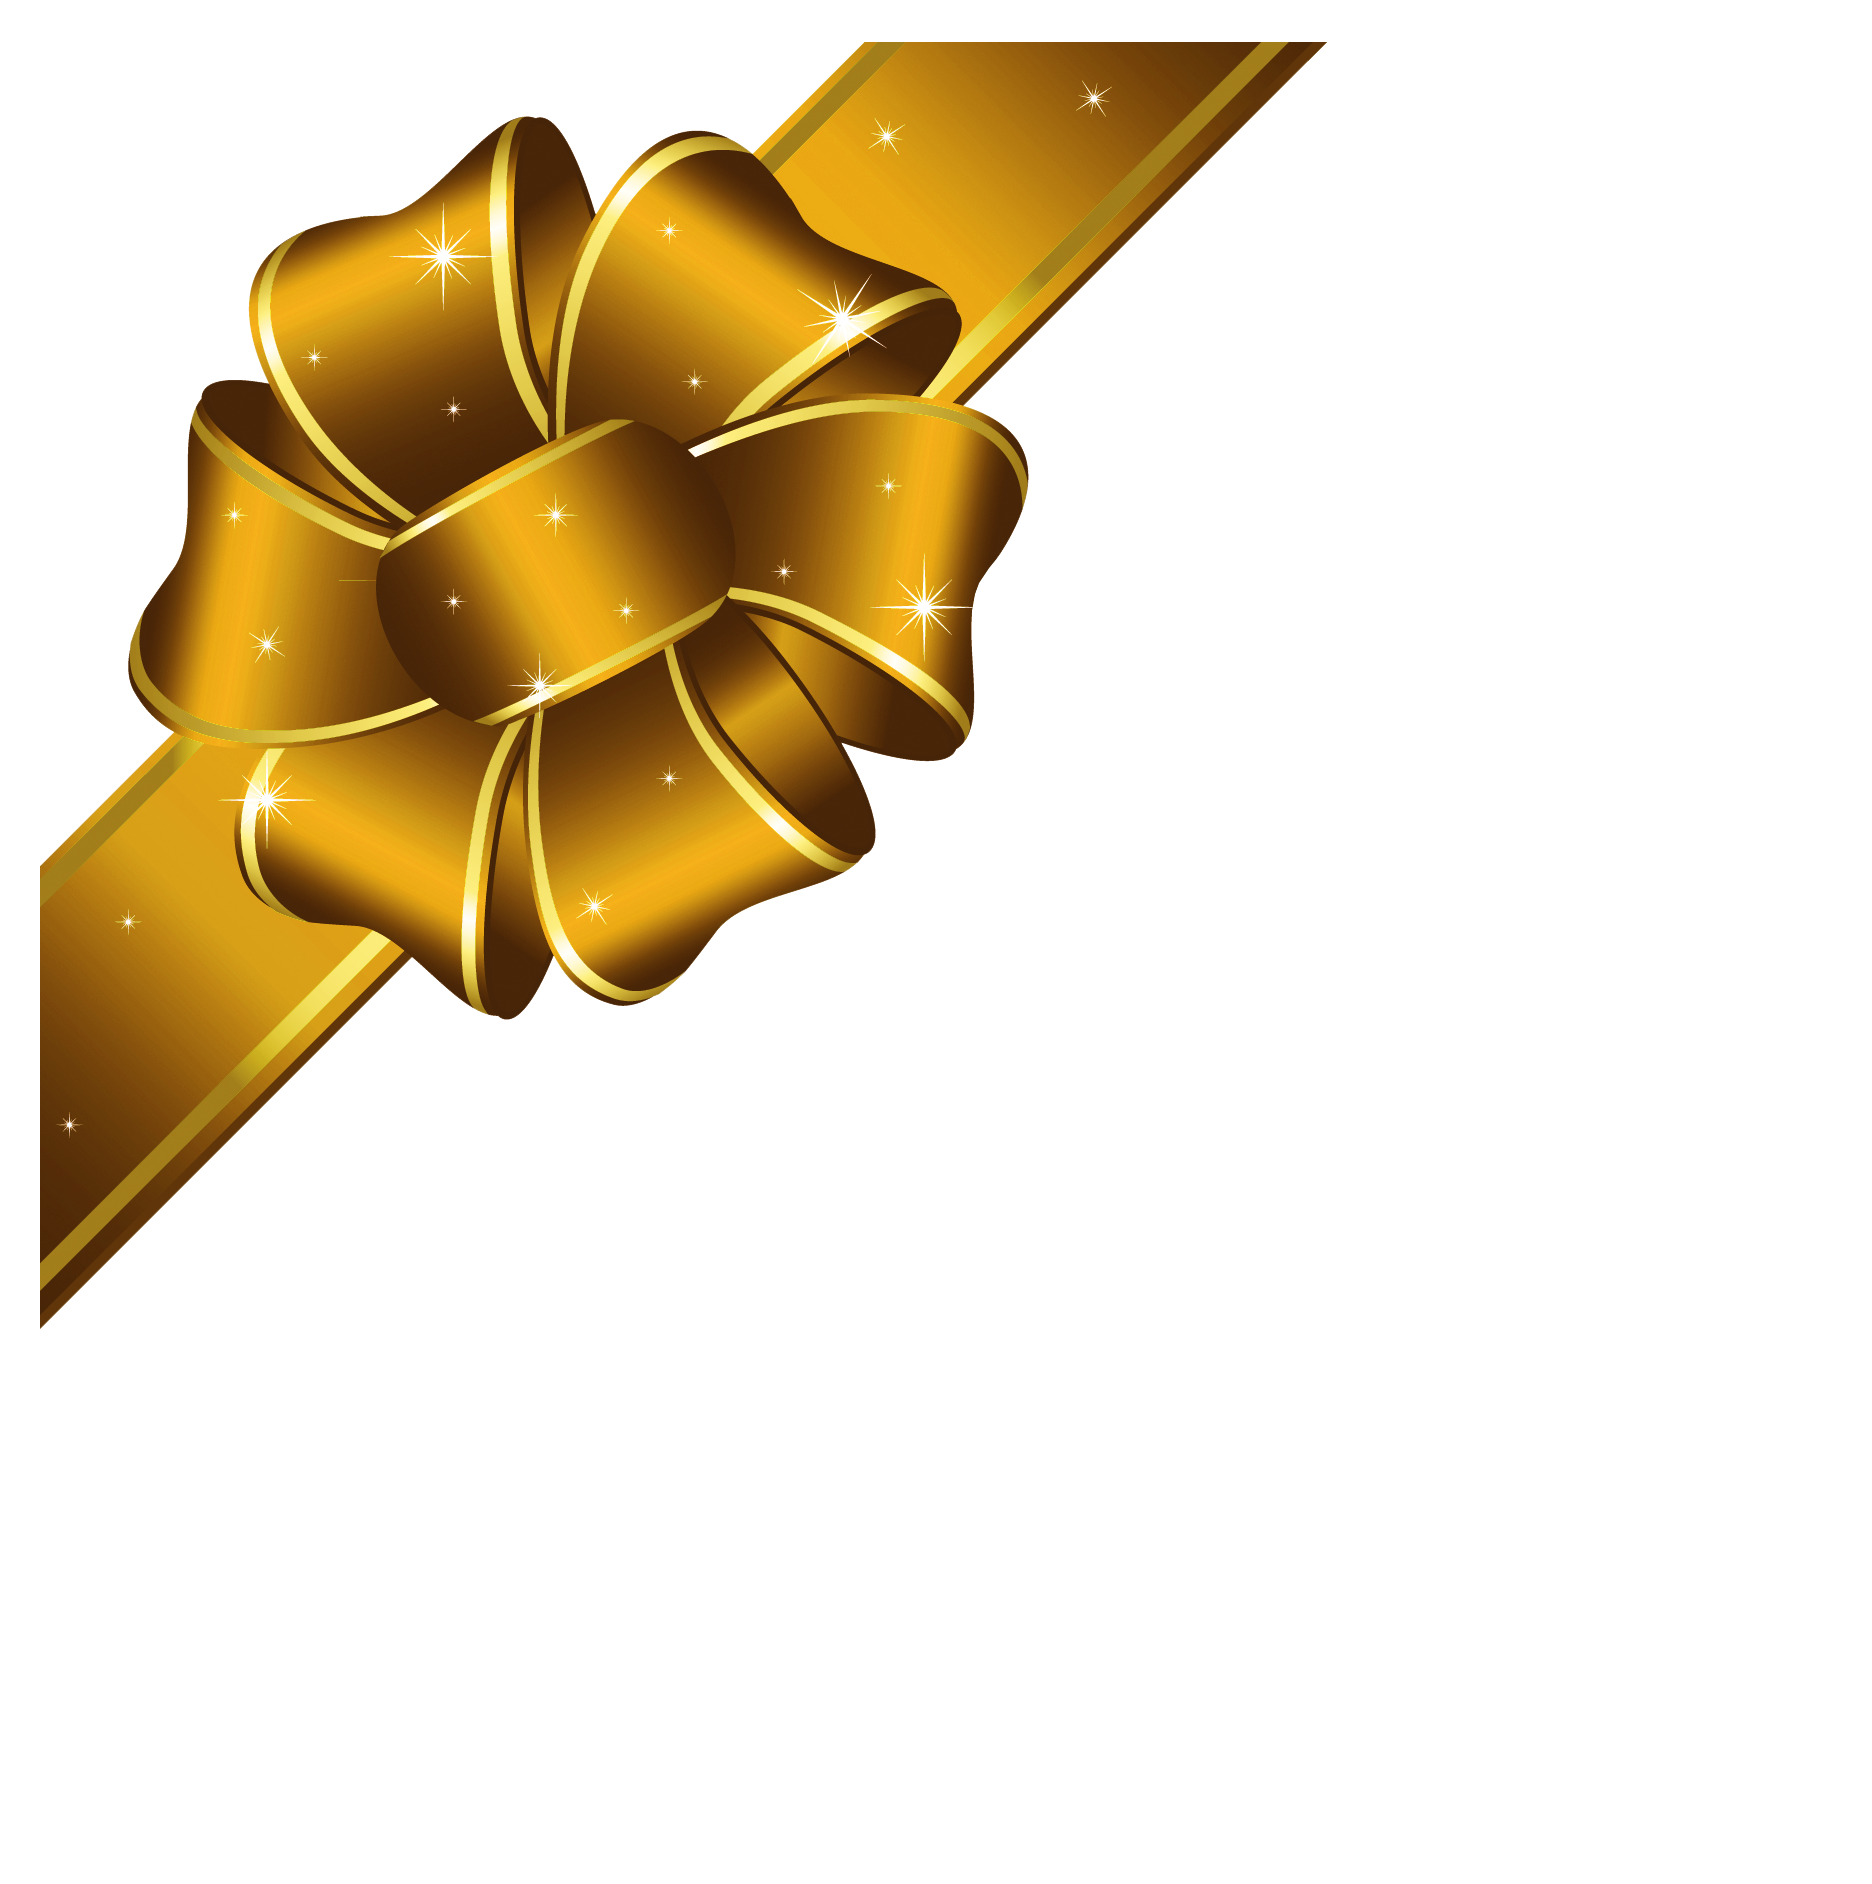 Gold Christmas Bow Clipart - Clipart Kid